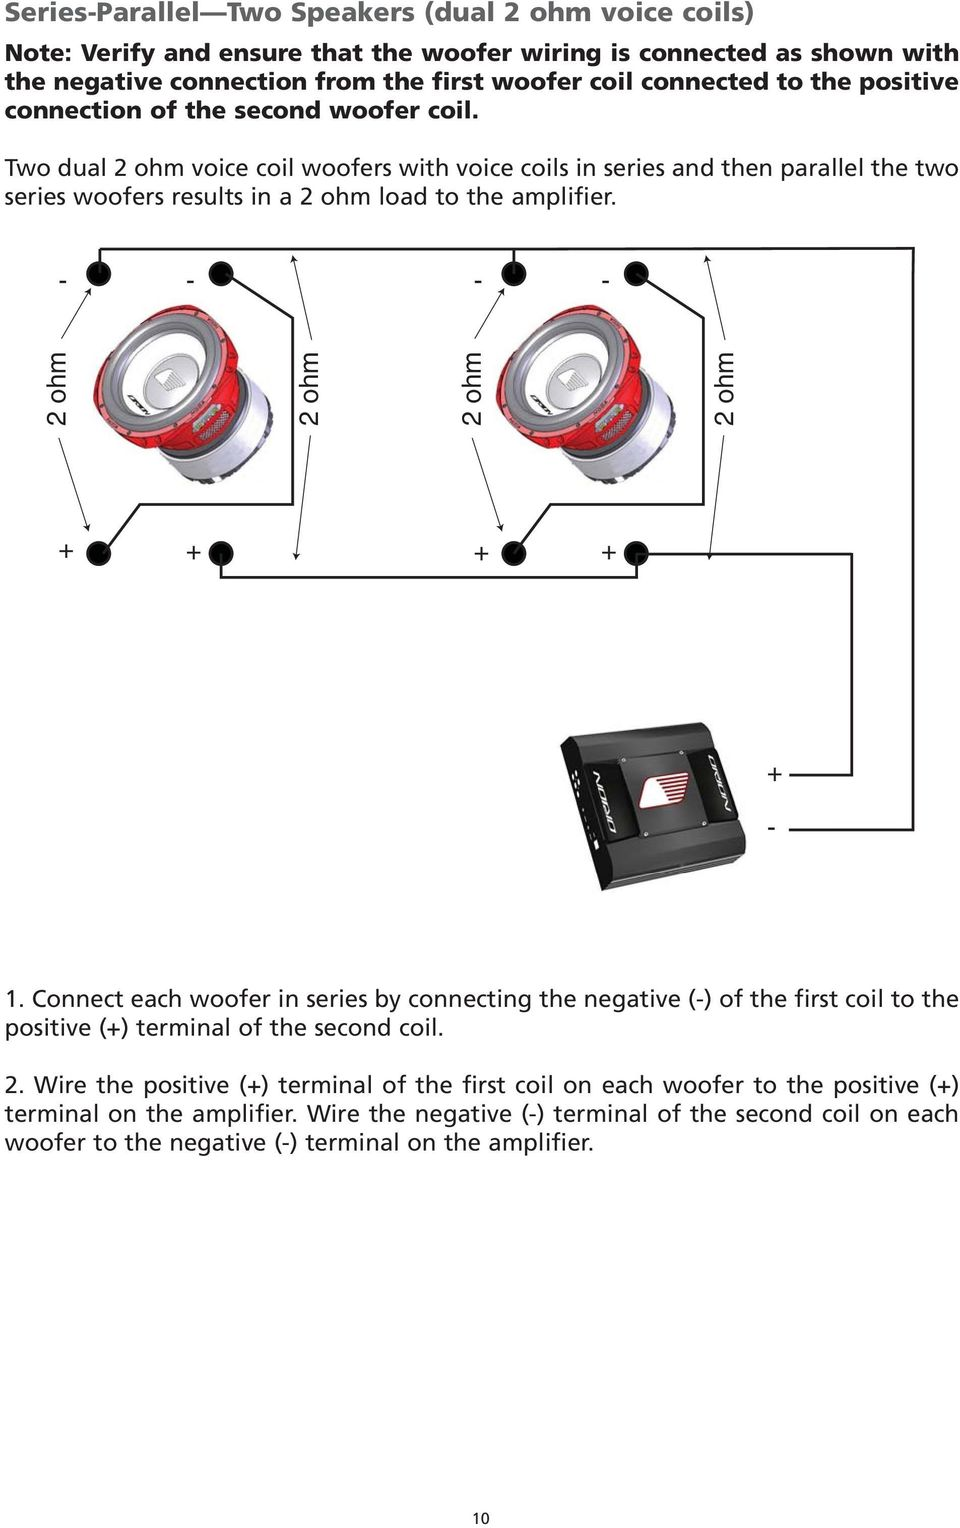 hight resolution of two dual voice coil woofers with voice coils in series and then parallel the two series